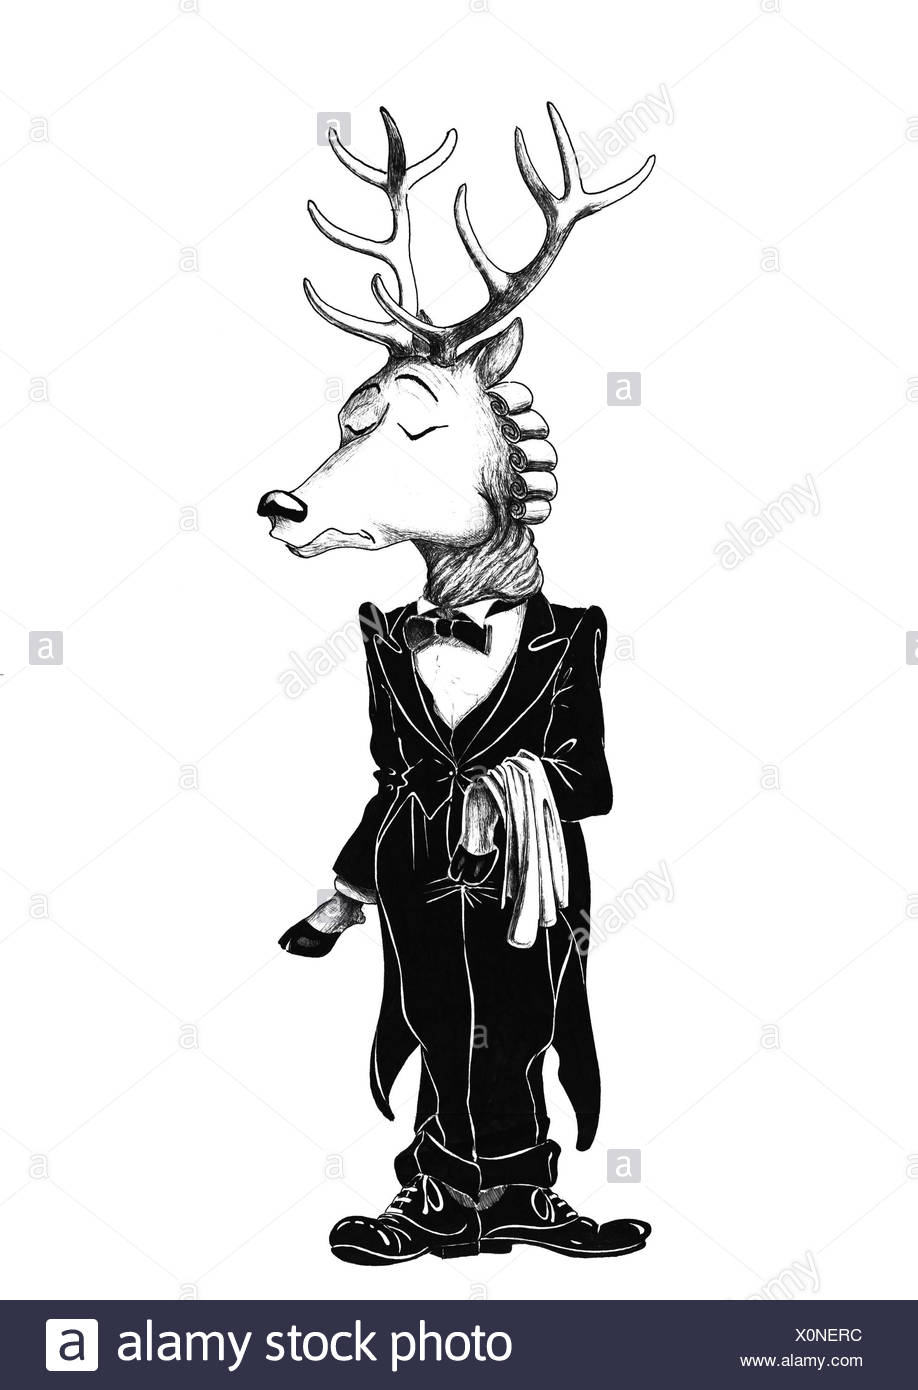 Deer with antlers in tailcoat with bow-tie - Stock Image